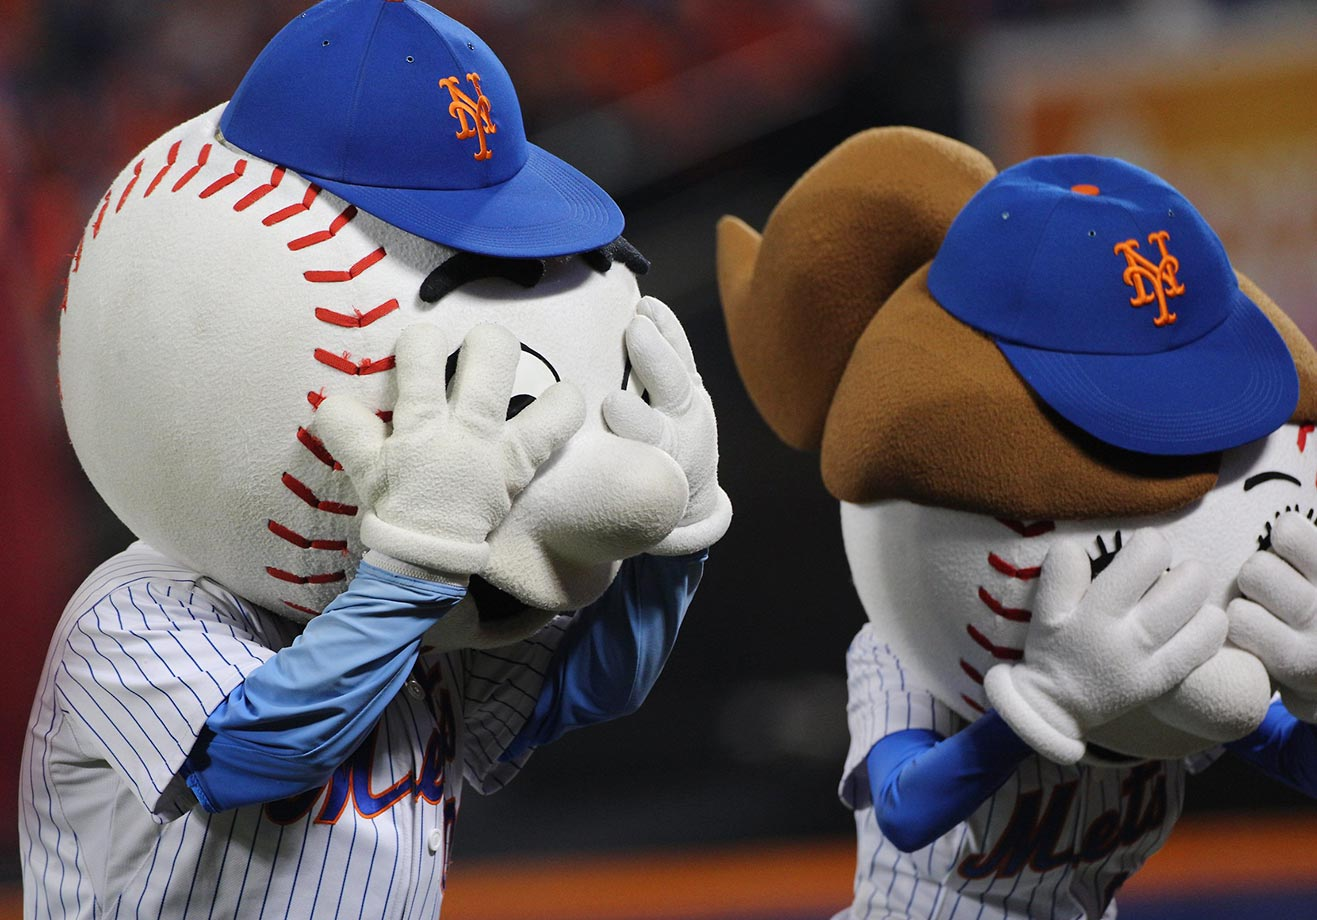 Mr. and Mrs. Met couldn't bare to look during Game 4 of the World Series.